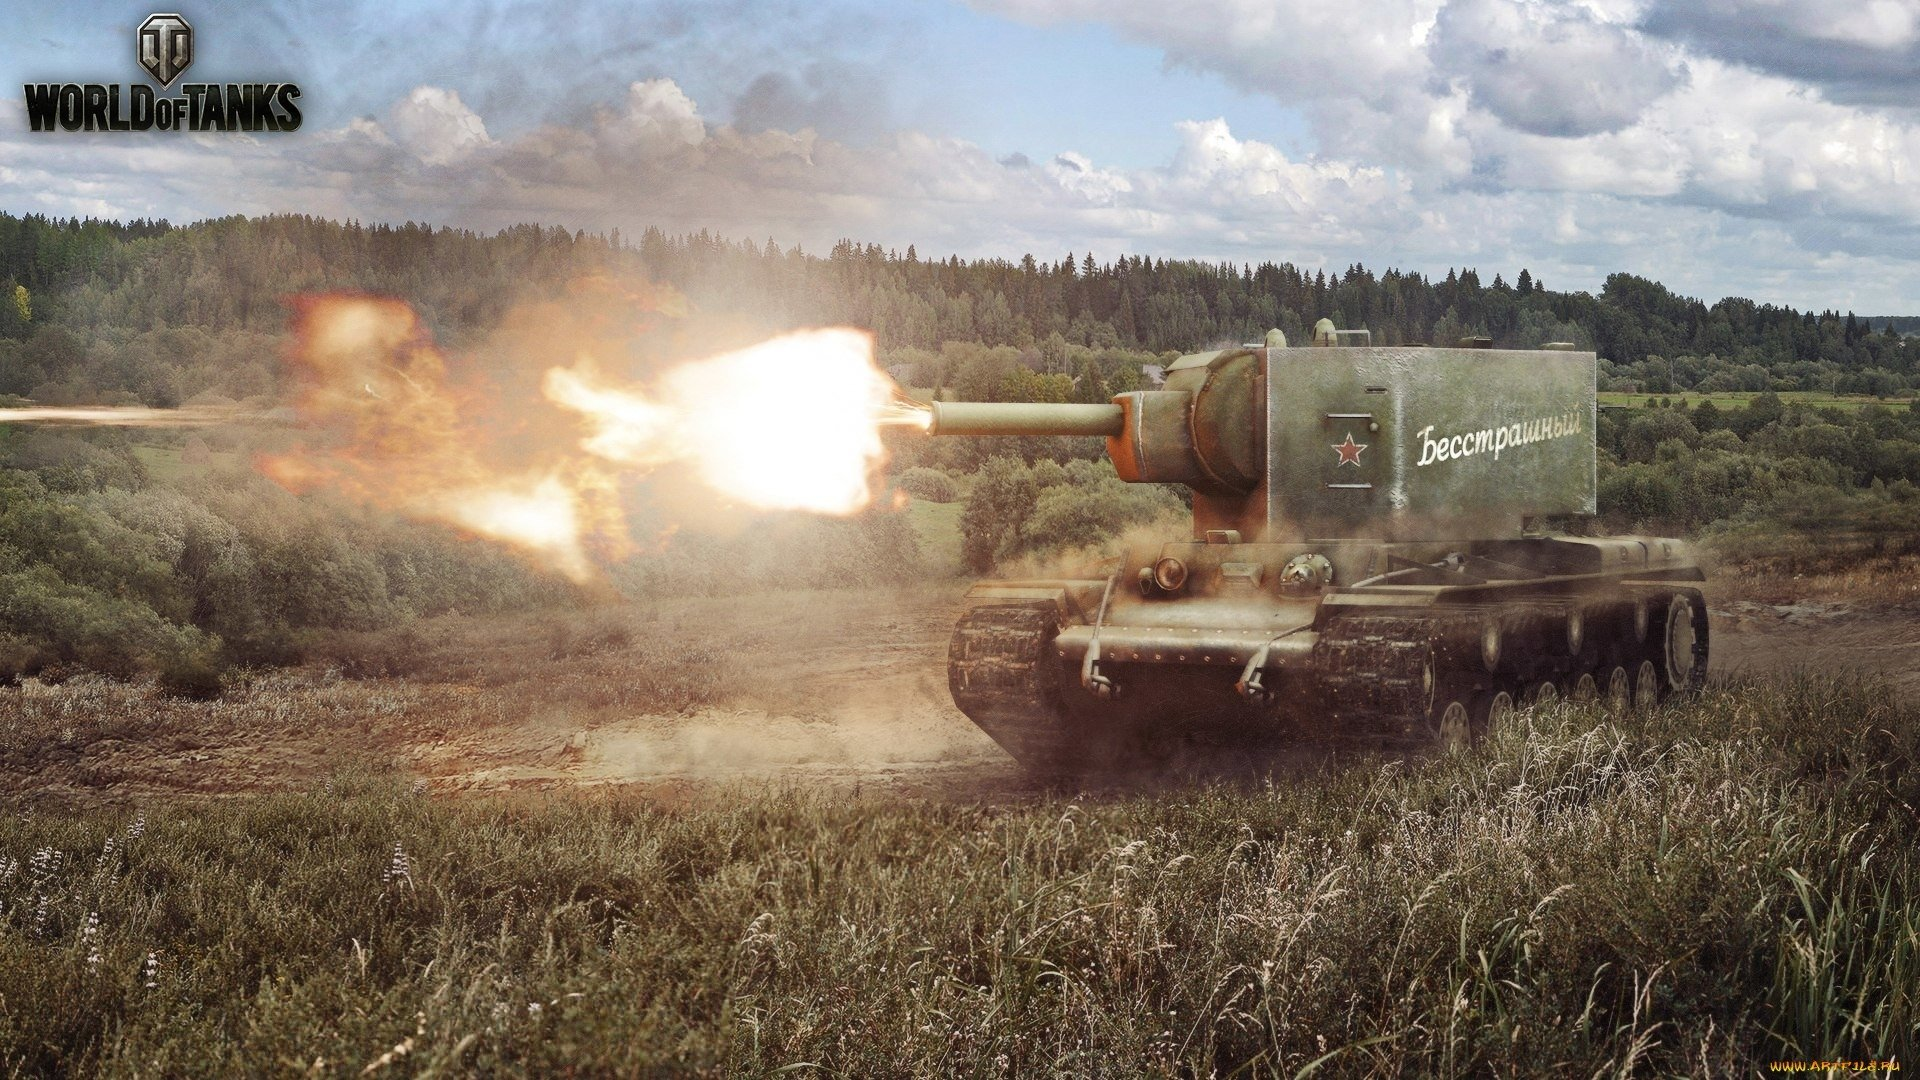 390 world of tanks hd wallpapers | background images - wallpaper abyss